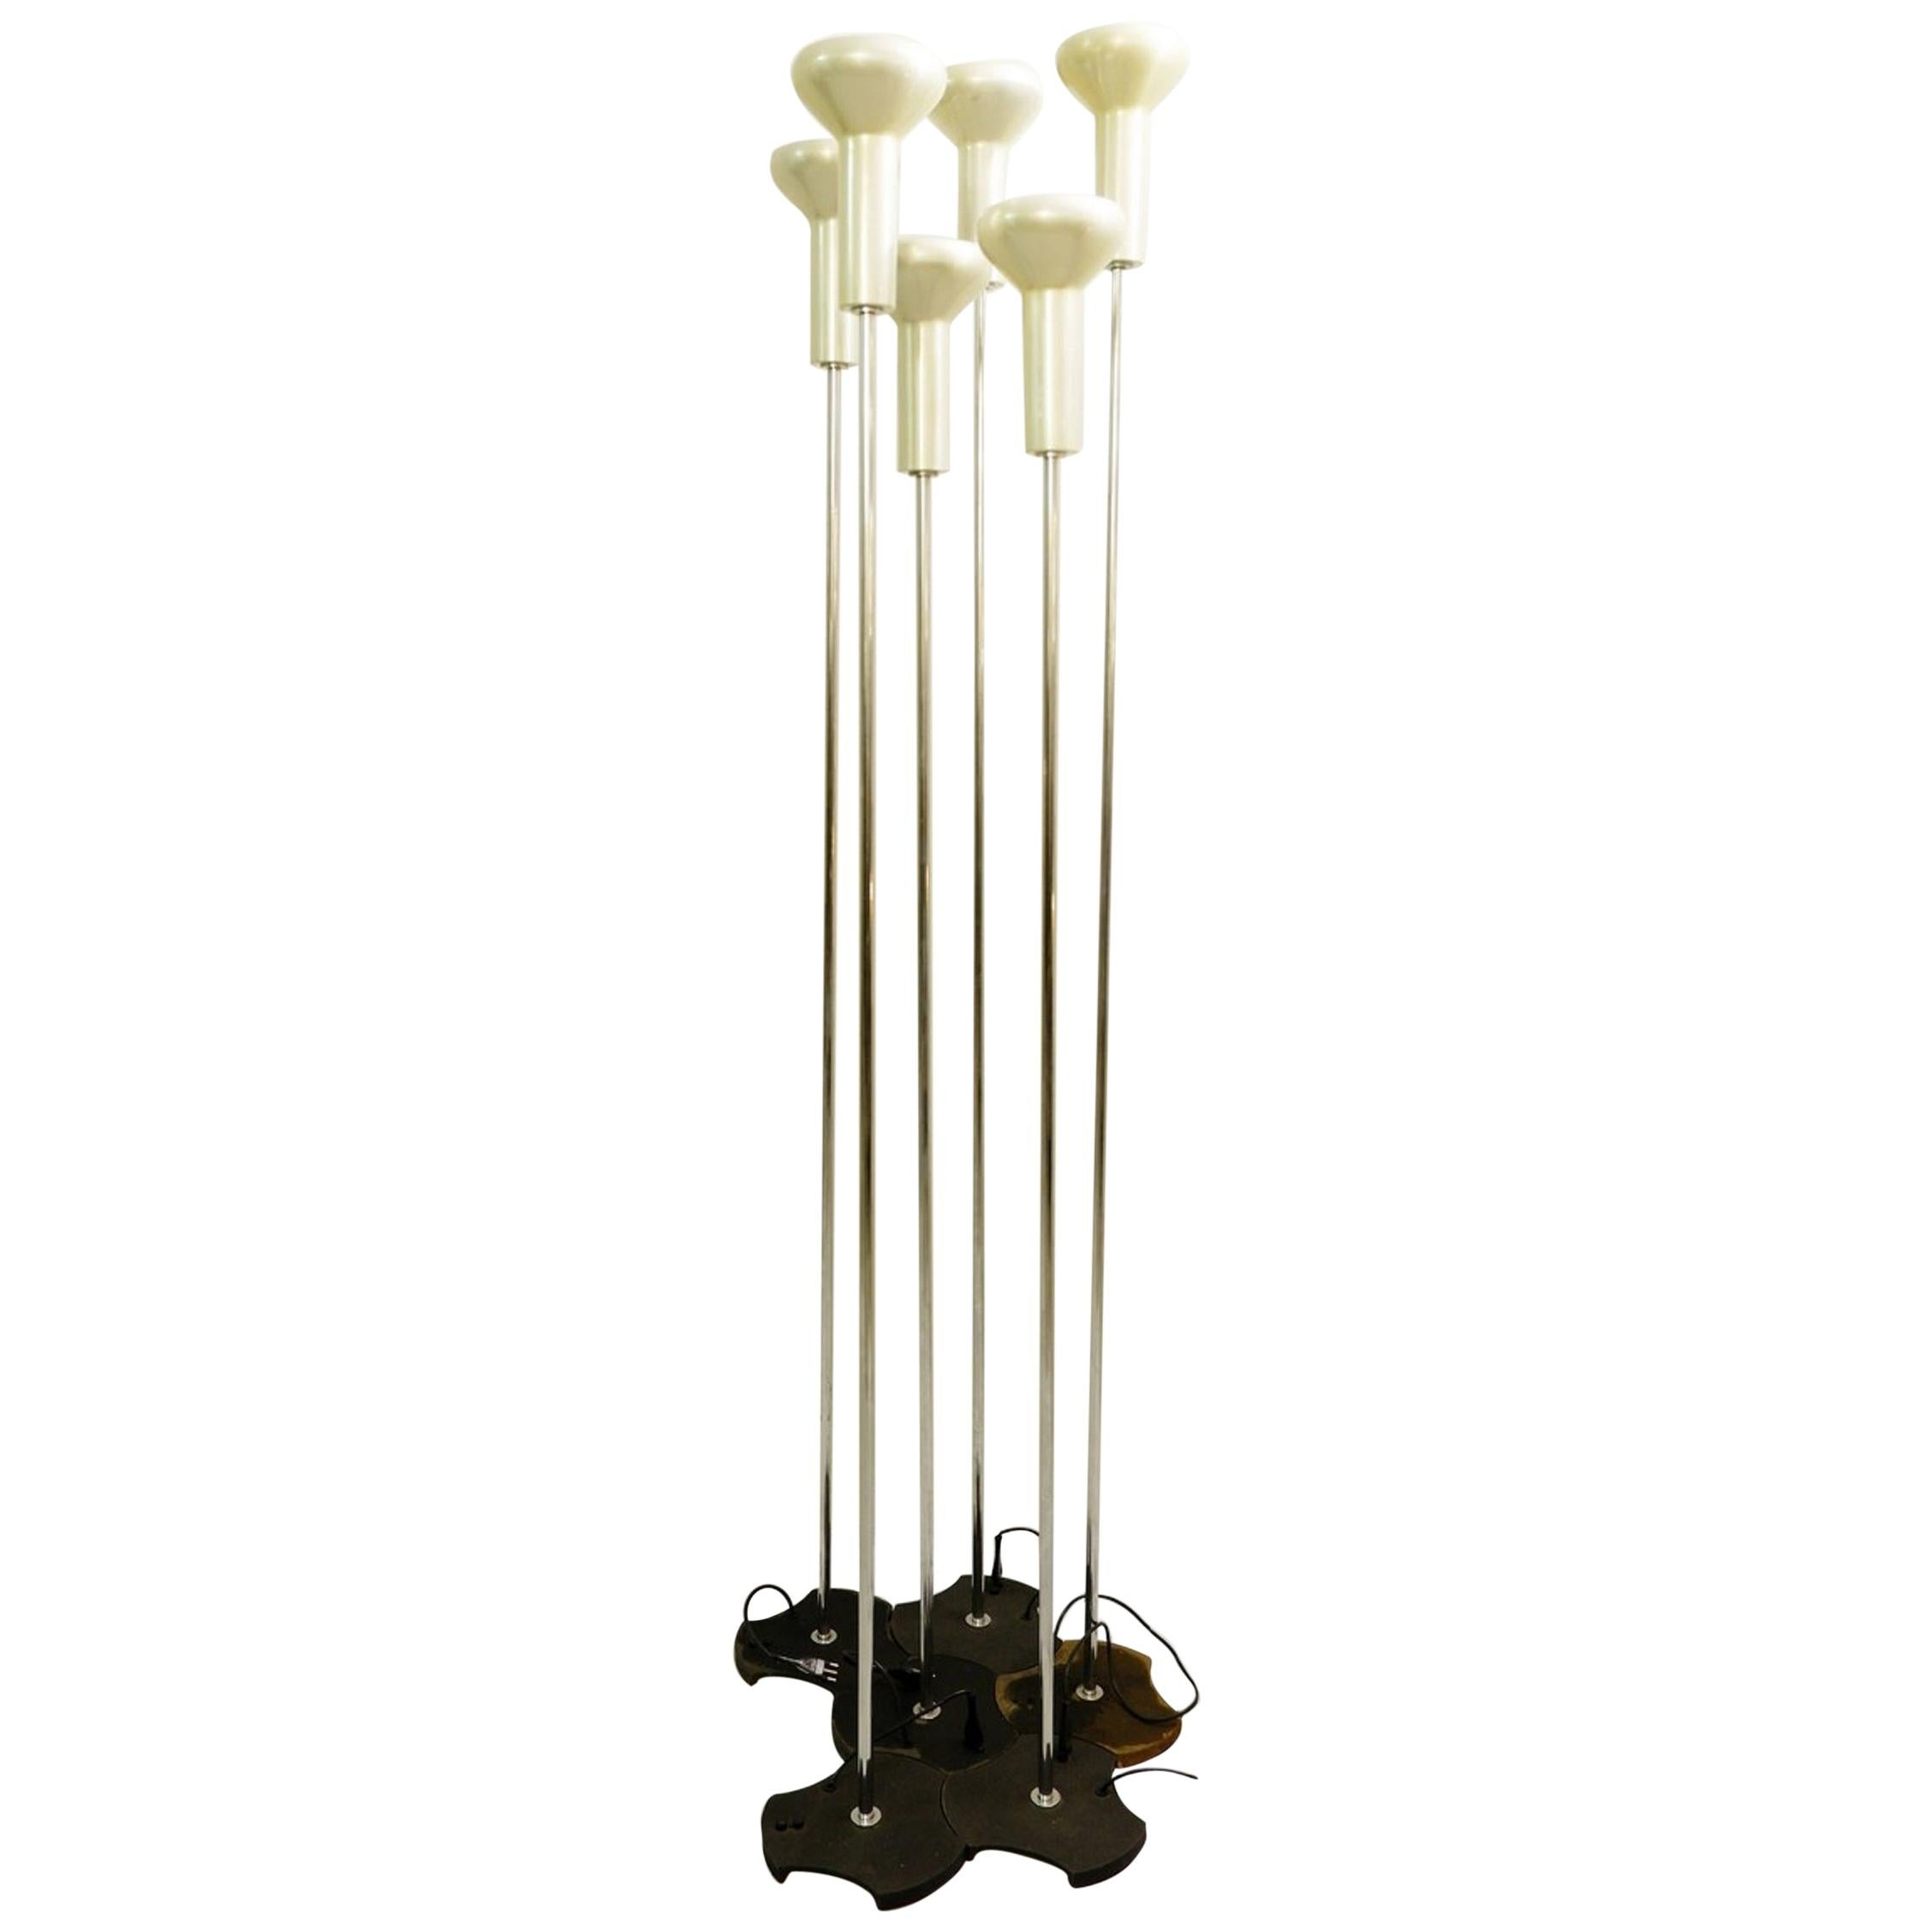 Floor Lamps Model 1074 by Gino Sarfatti for Arteluce